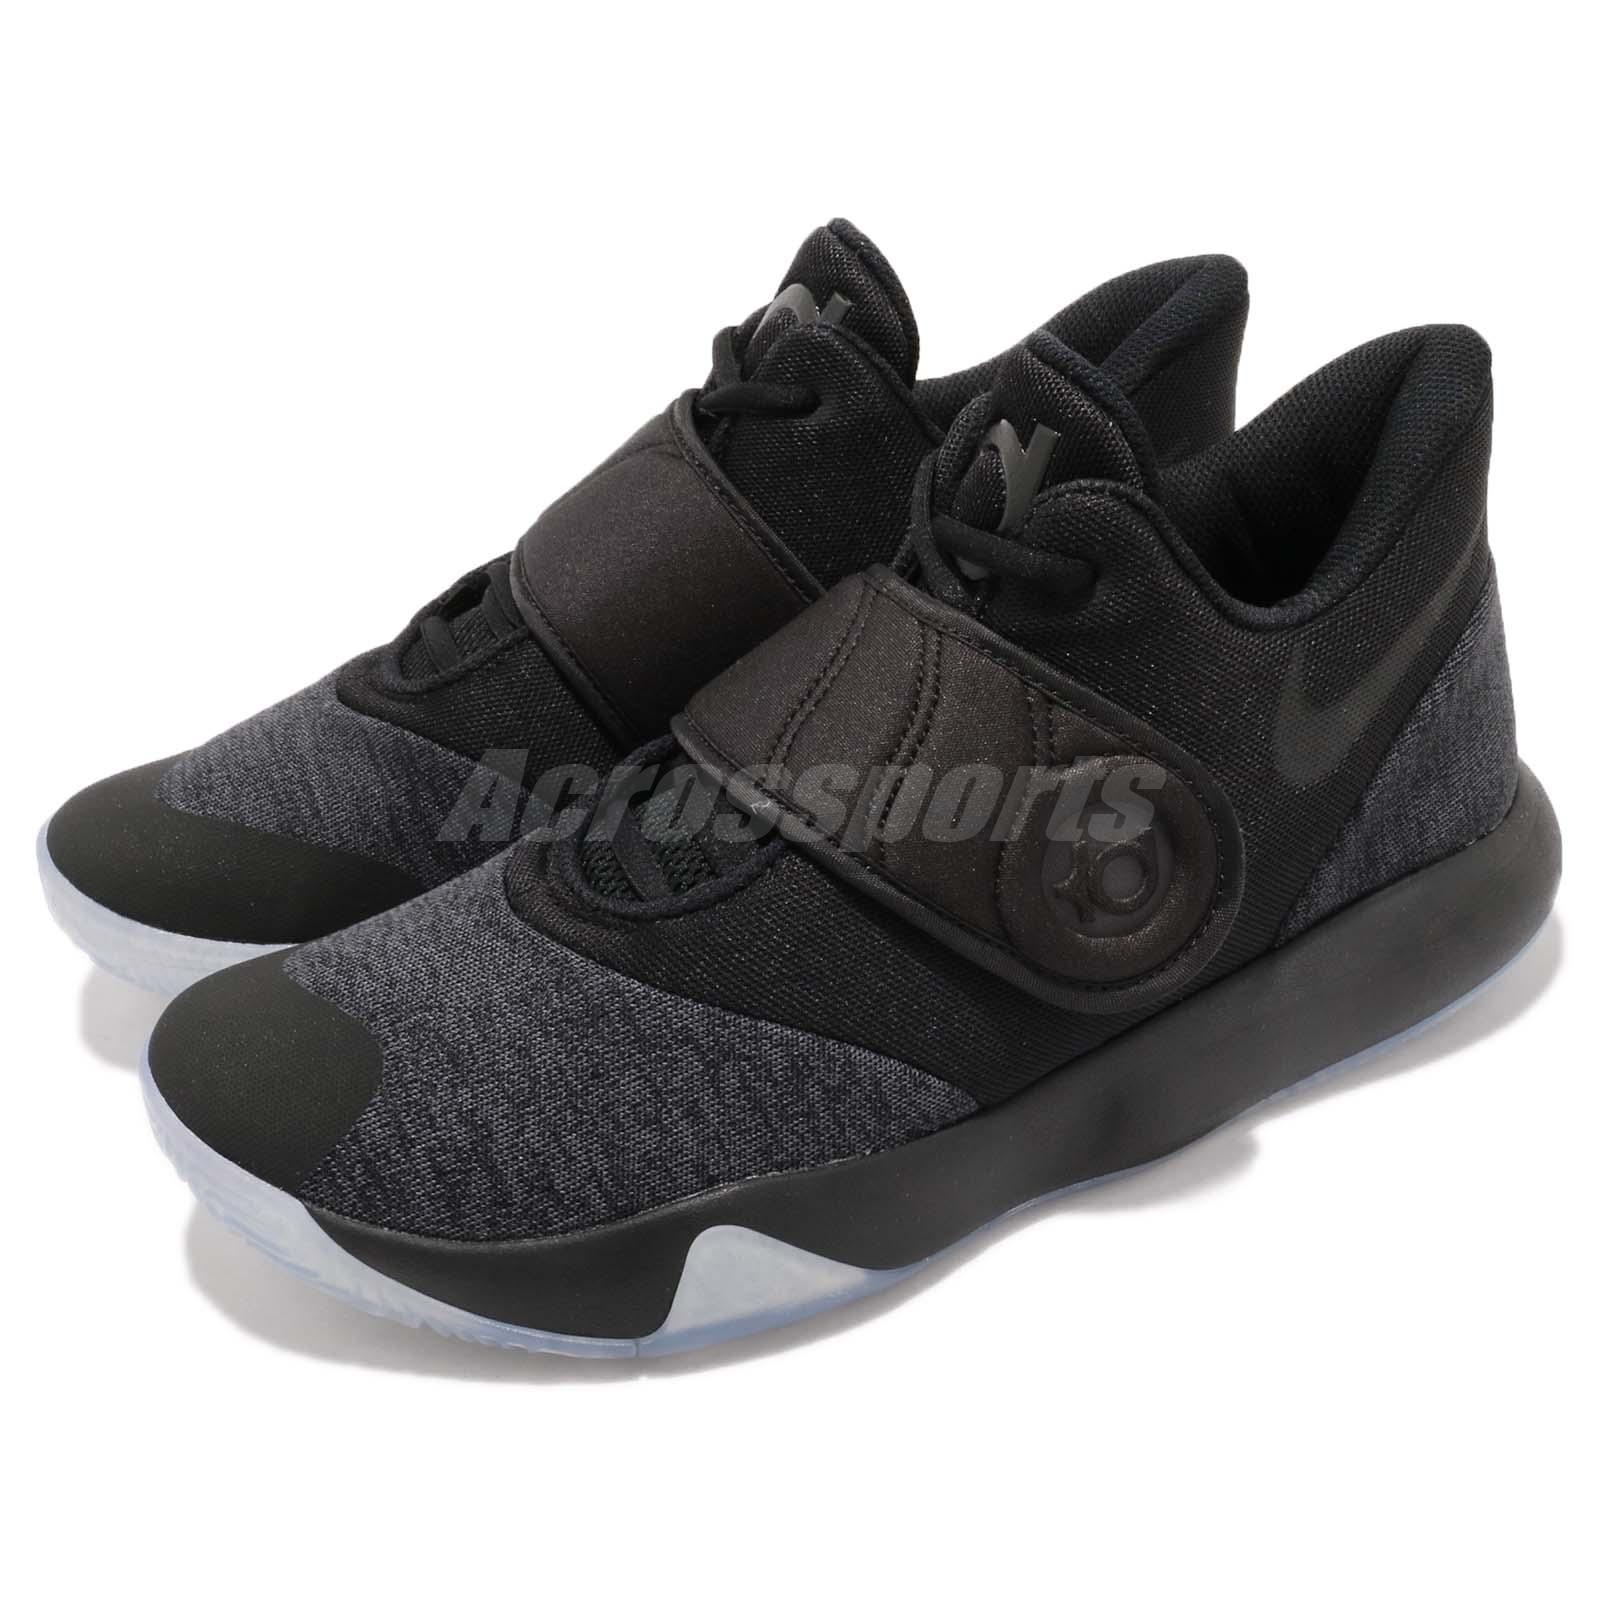 uk availability 44c7c 4a693 Details about Nike KD Trey 5 VI EP 6 Kevin Durant Black Grey Men Basketball  Shoes AA7070-010